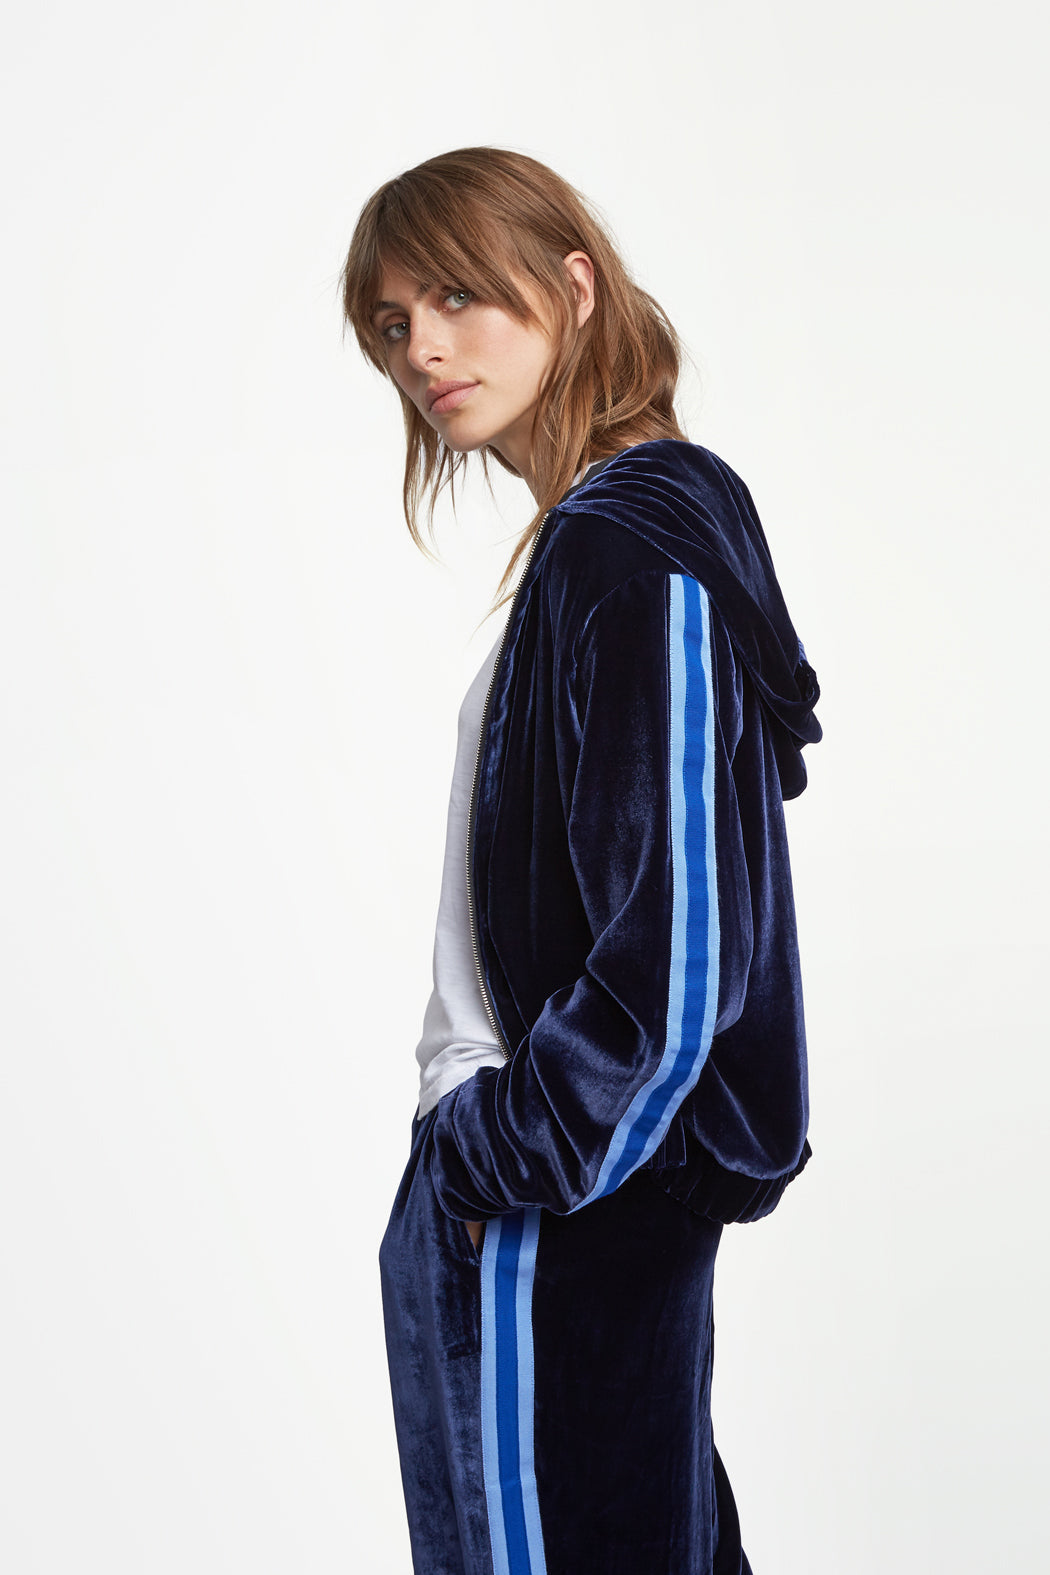 The Cropped Hoodie - Insignia, Navy & Blue Velvet - SERENA BUTE